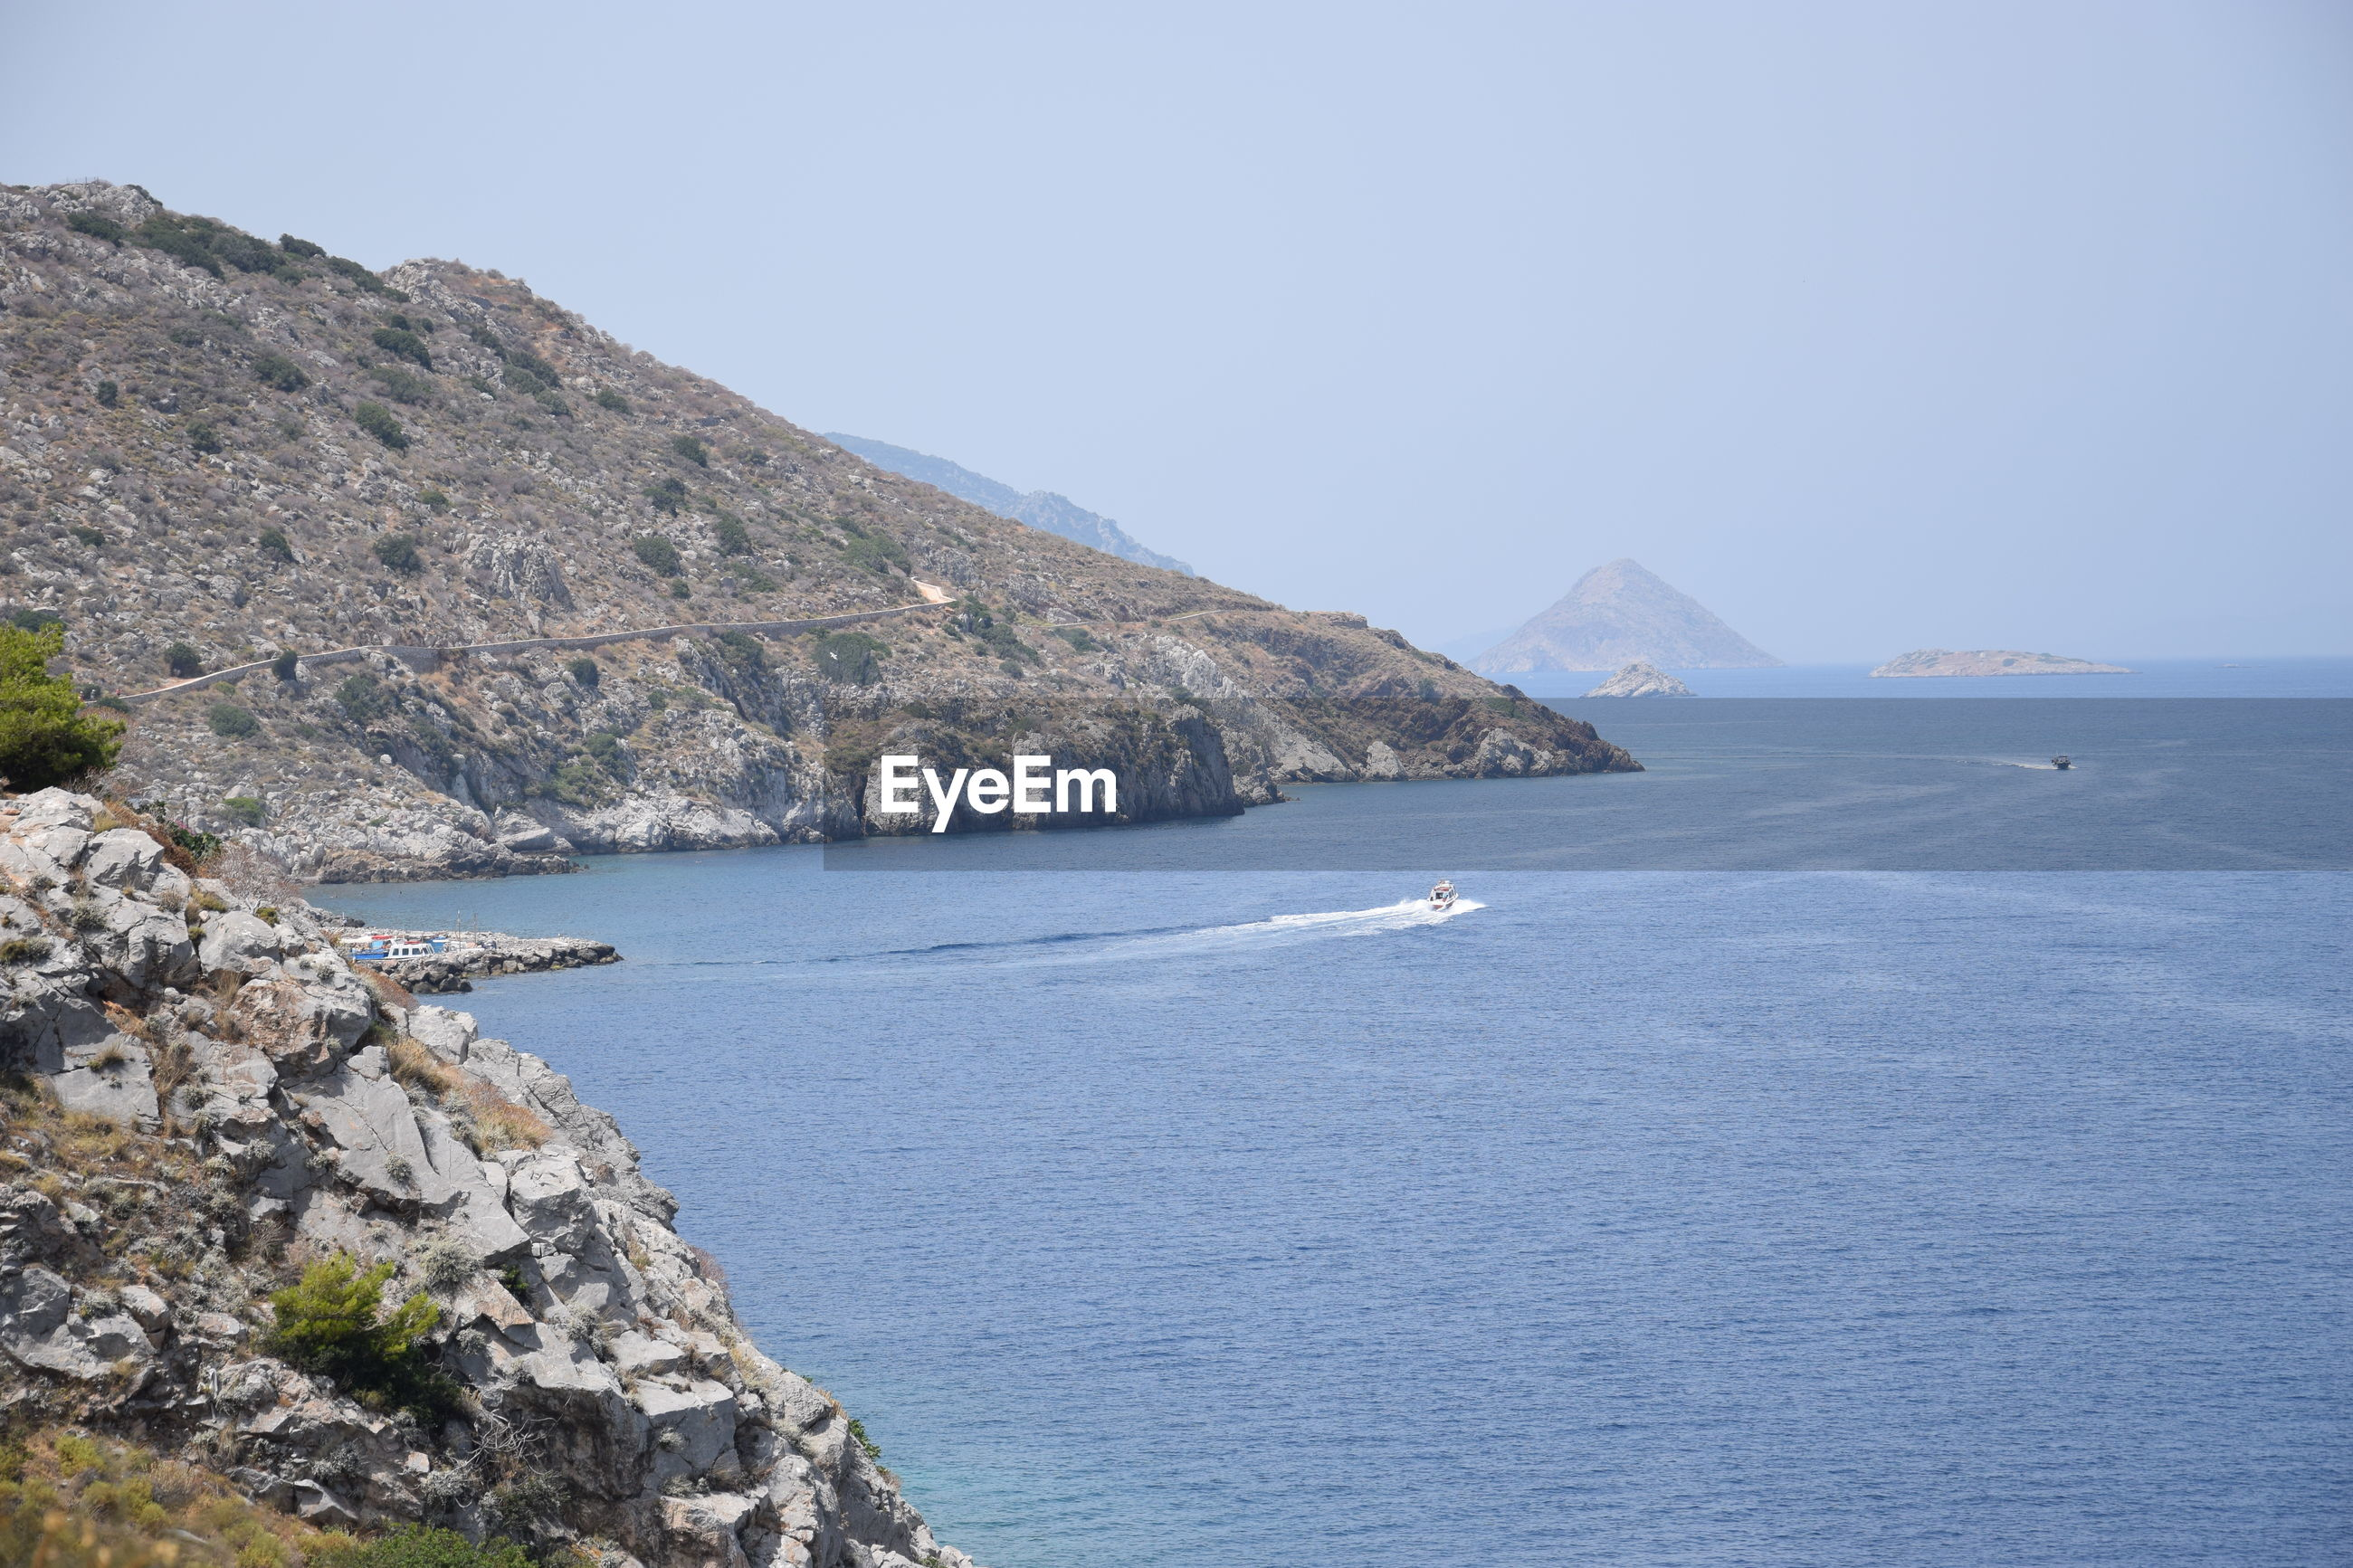 SCENIC VIEW OF BAY